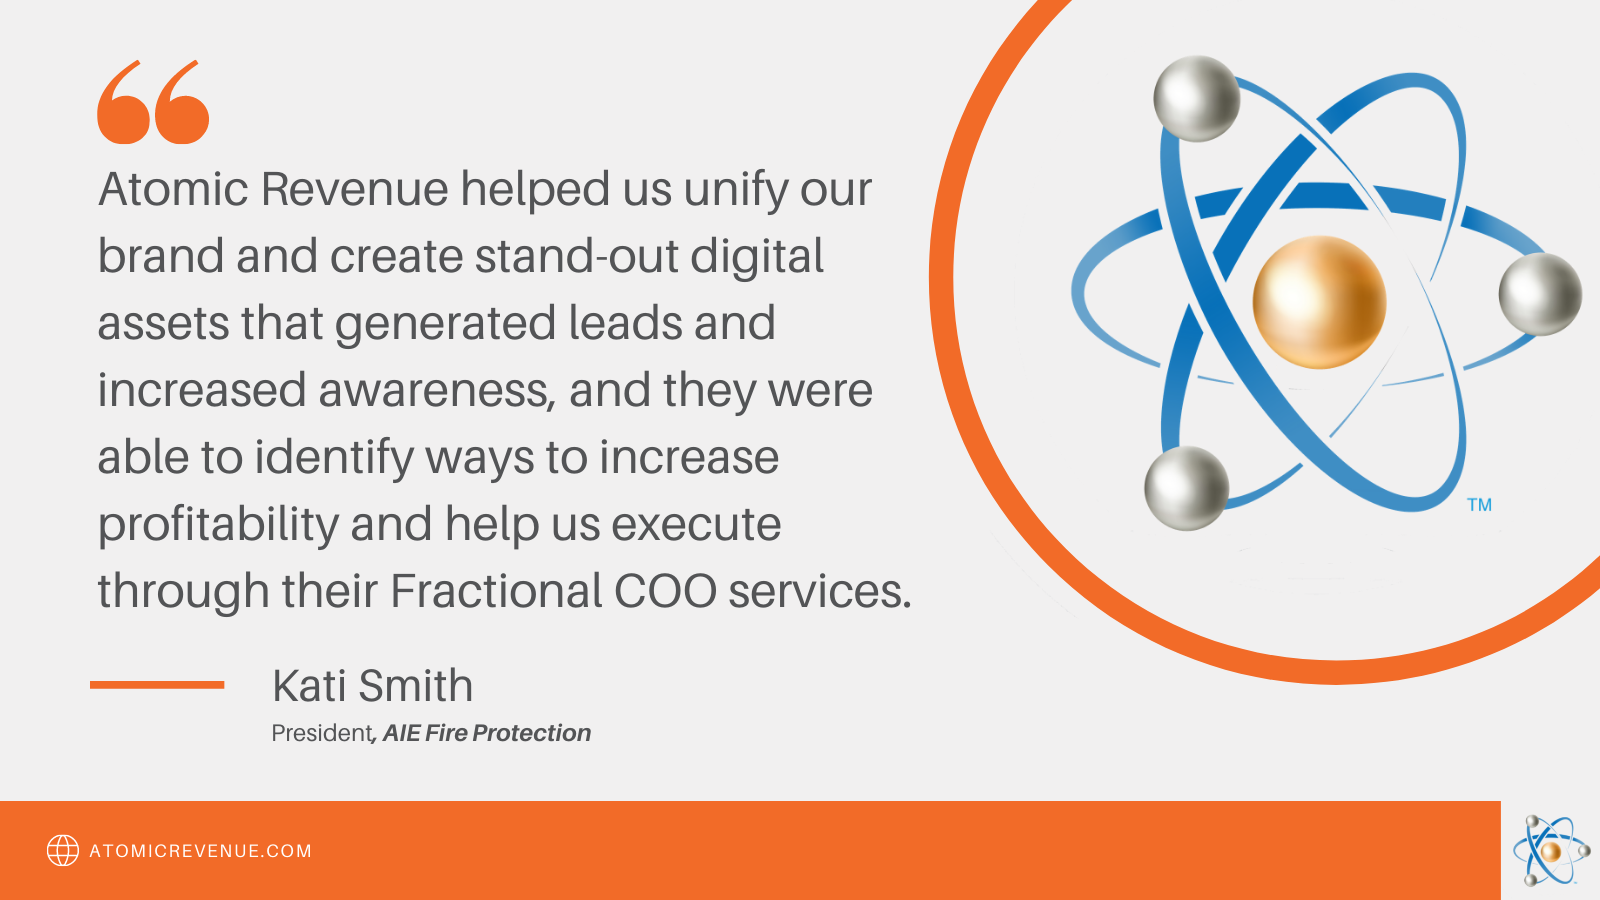 atomic revenue testimonial engineering kati smith aie fire fractional services